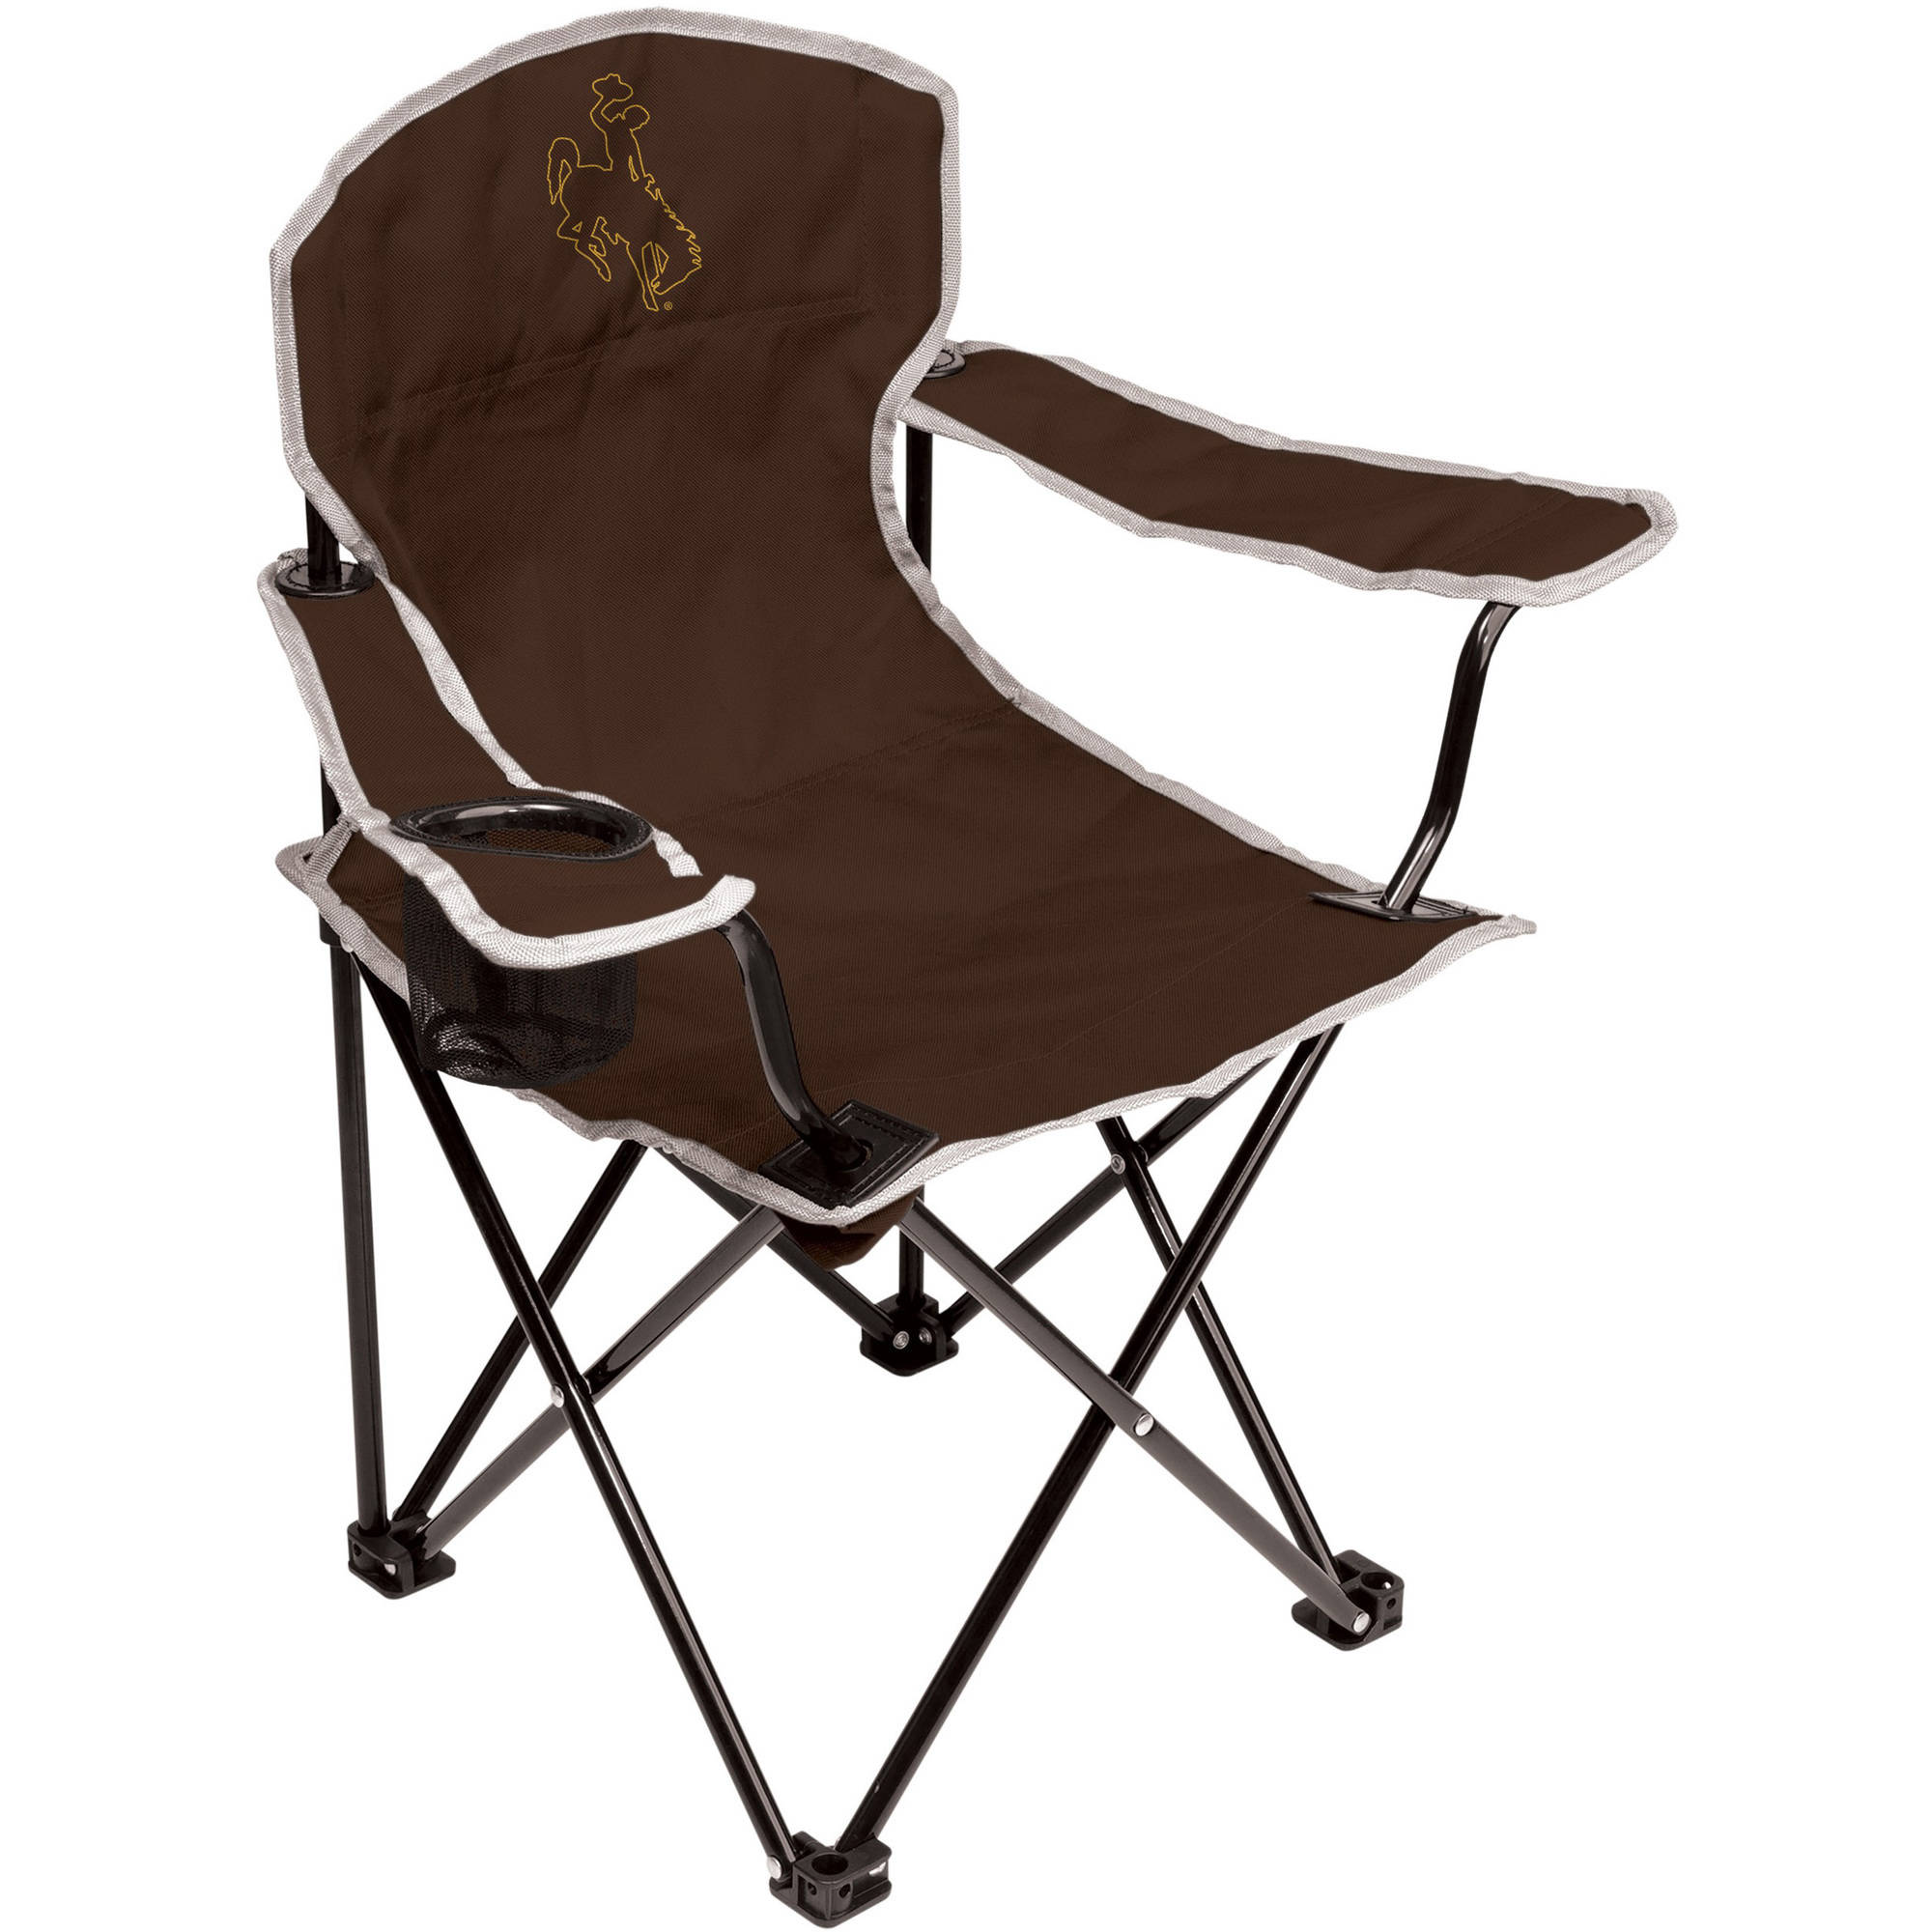 NCAA Wyoming Cowboys Youth Size Tailgate Chair from Coleman by Rawlings